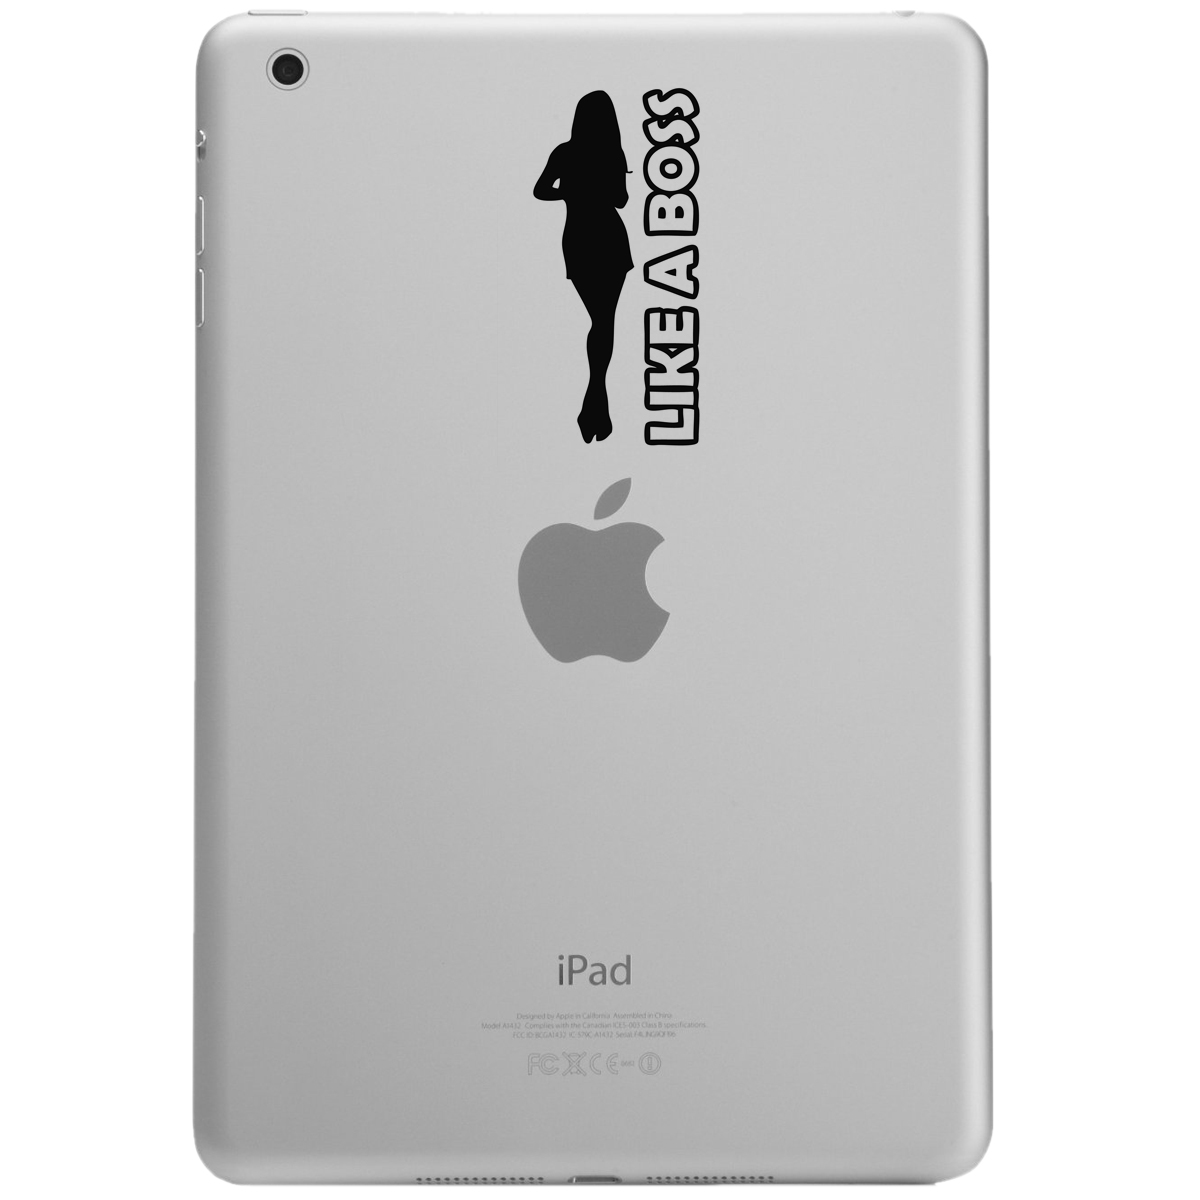 Like a Boss Girl Silhouette iPad Tablet Vinyl Sticker Decal